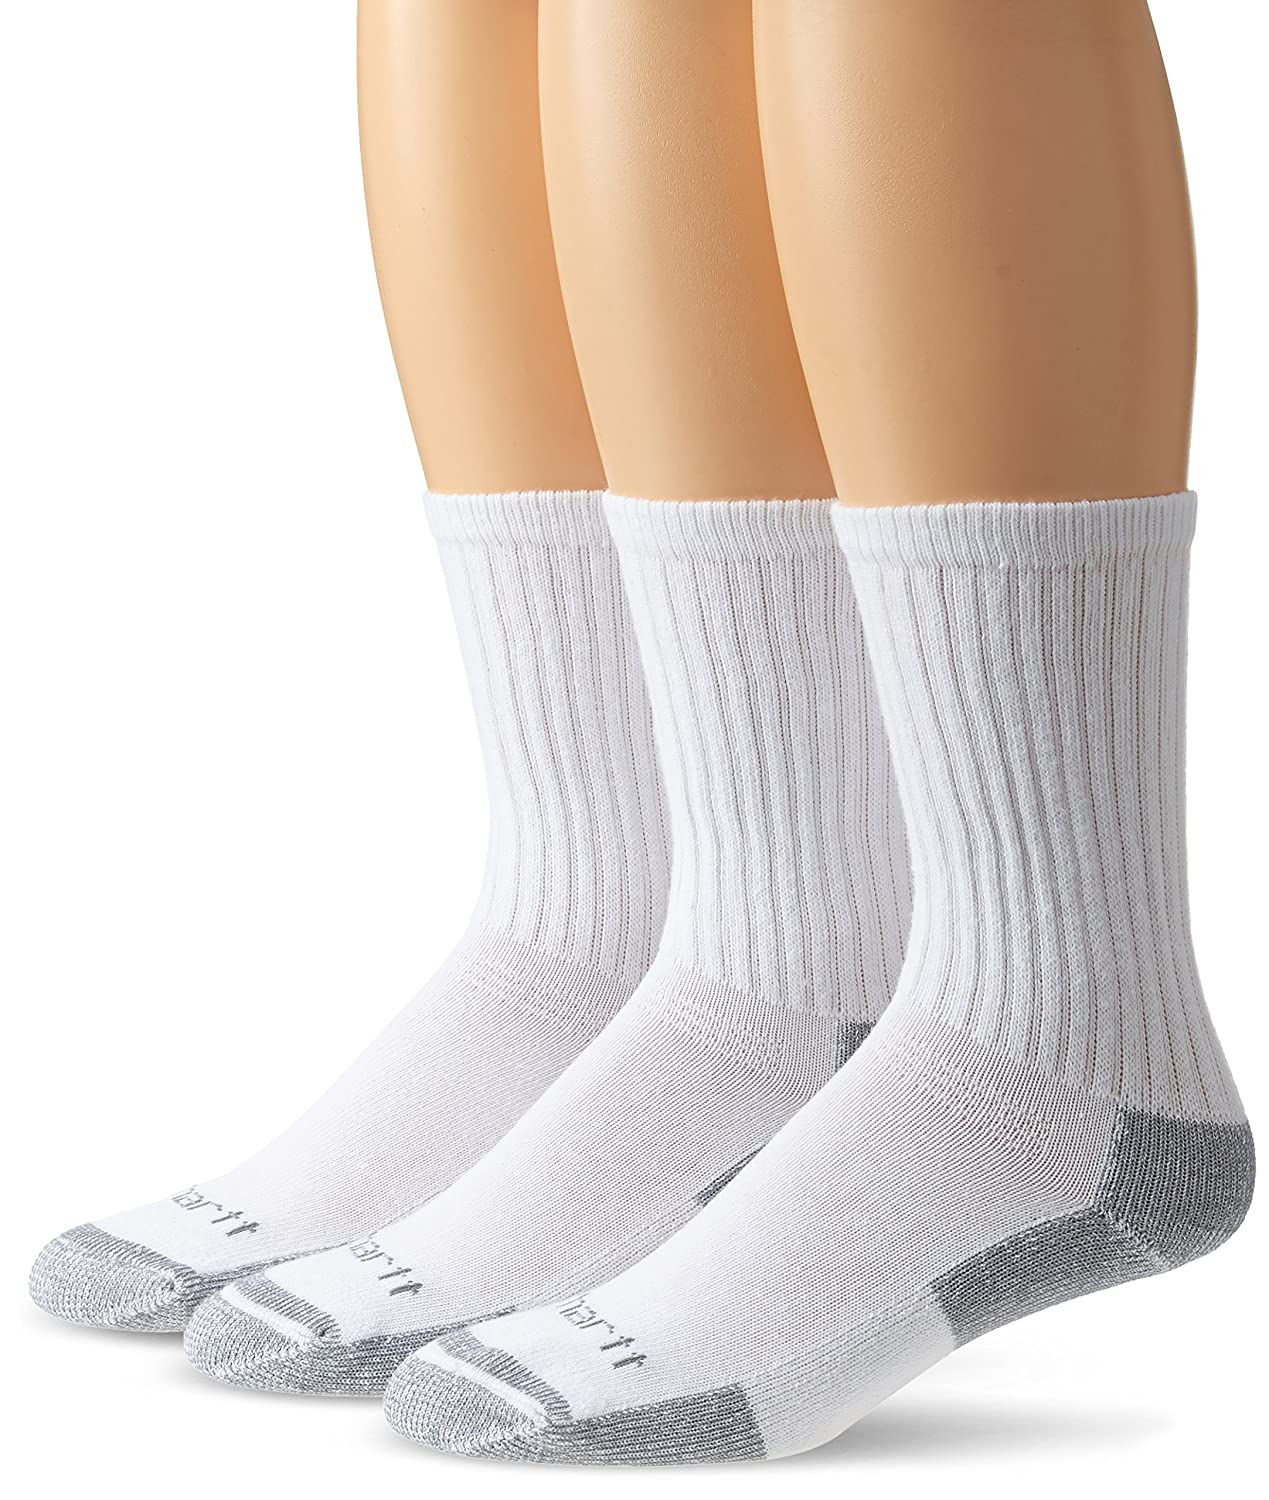 Carhartt Men's All-Season Cotton Crew Work Sock 3-Pack A62-3